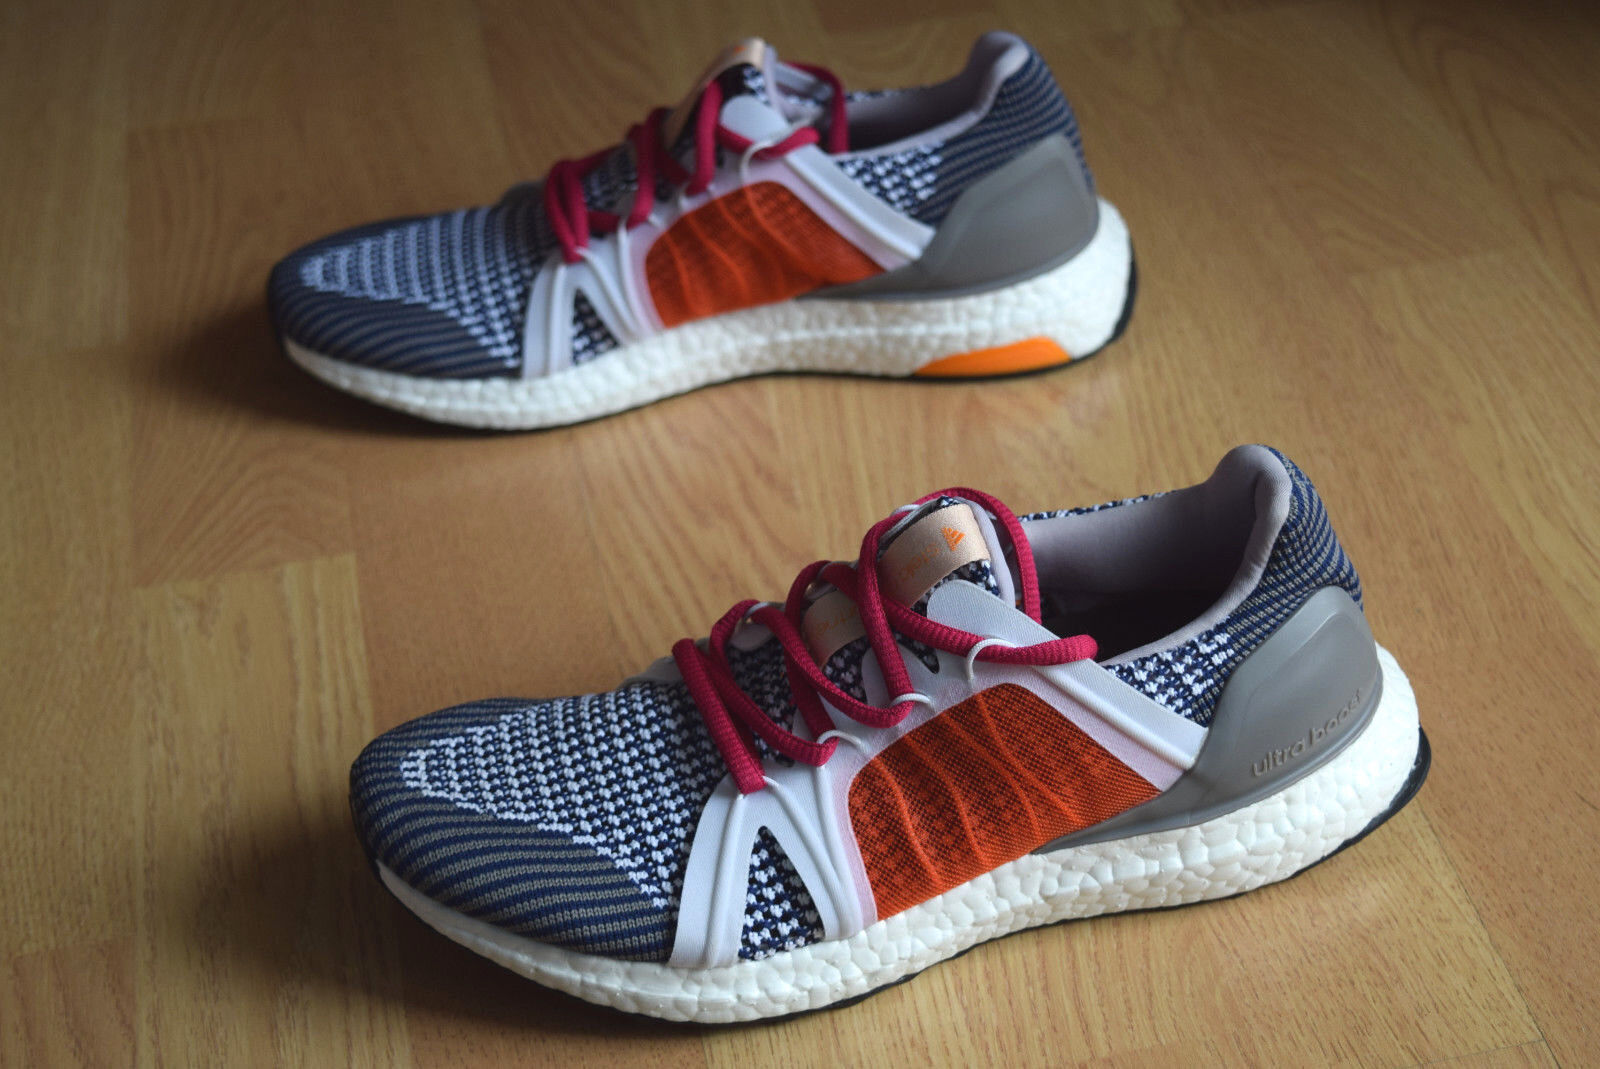 Adidas stella mccartney ultra boost 36 37 38 38,5  39 40 af6436 xr1 yeezy nmd  free delivery and returns